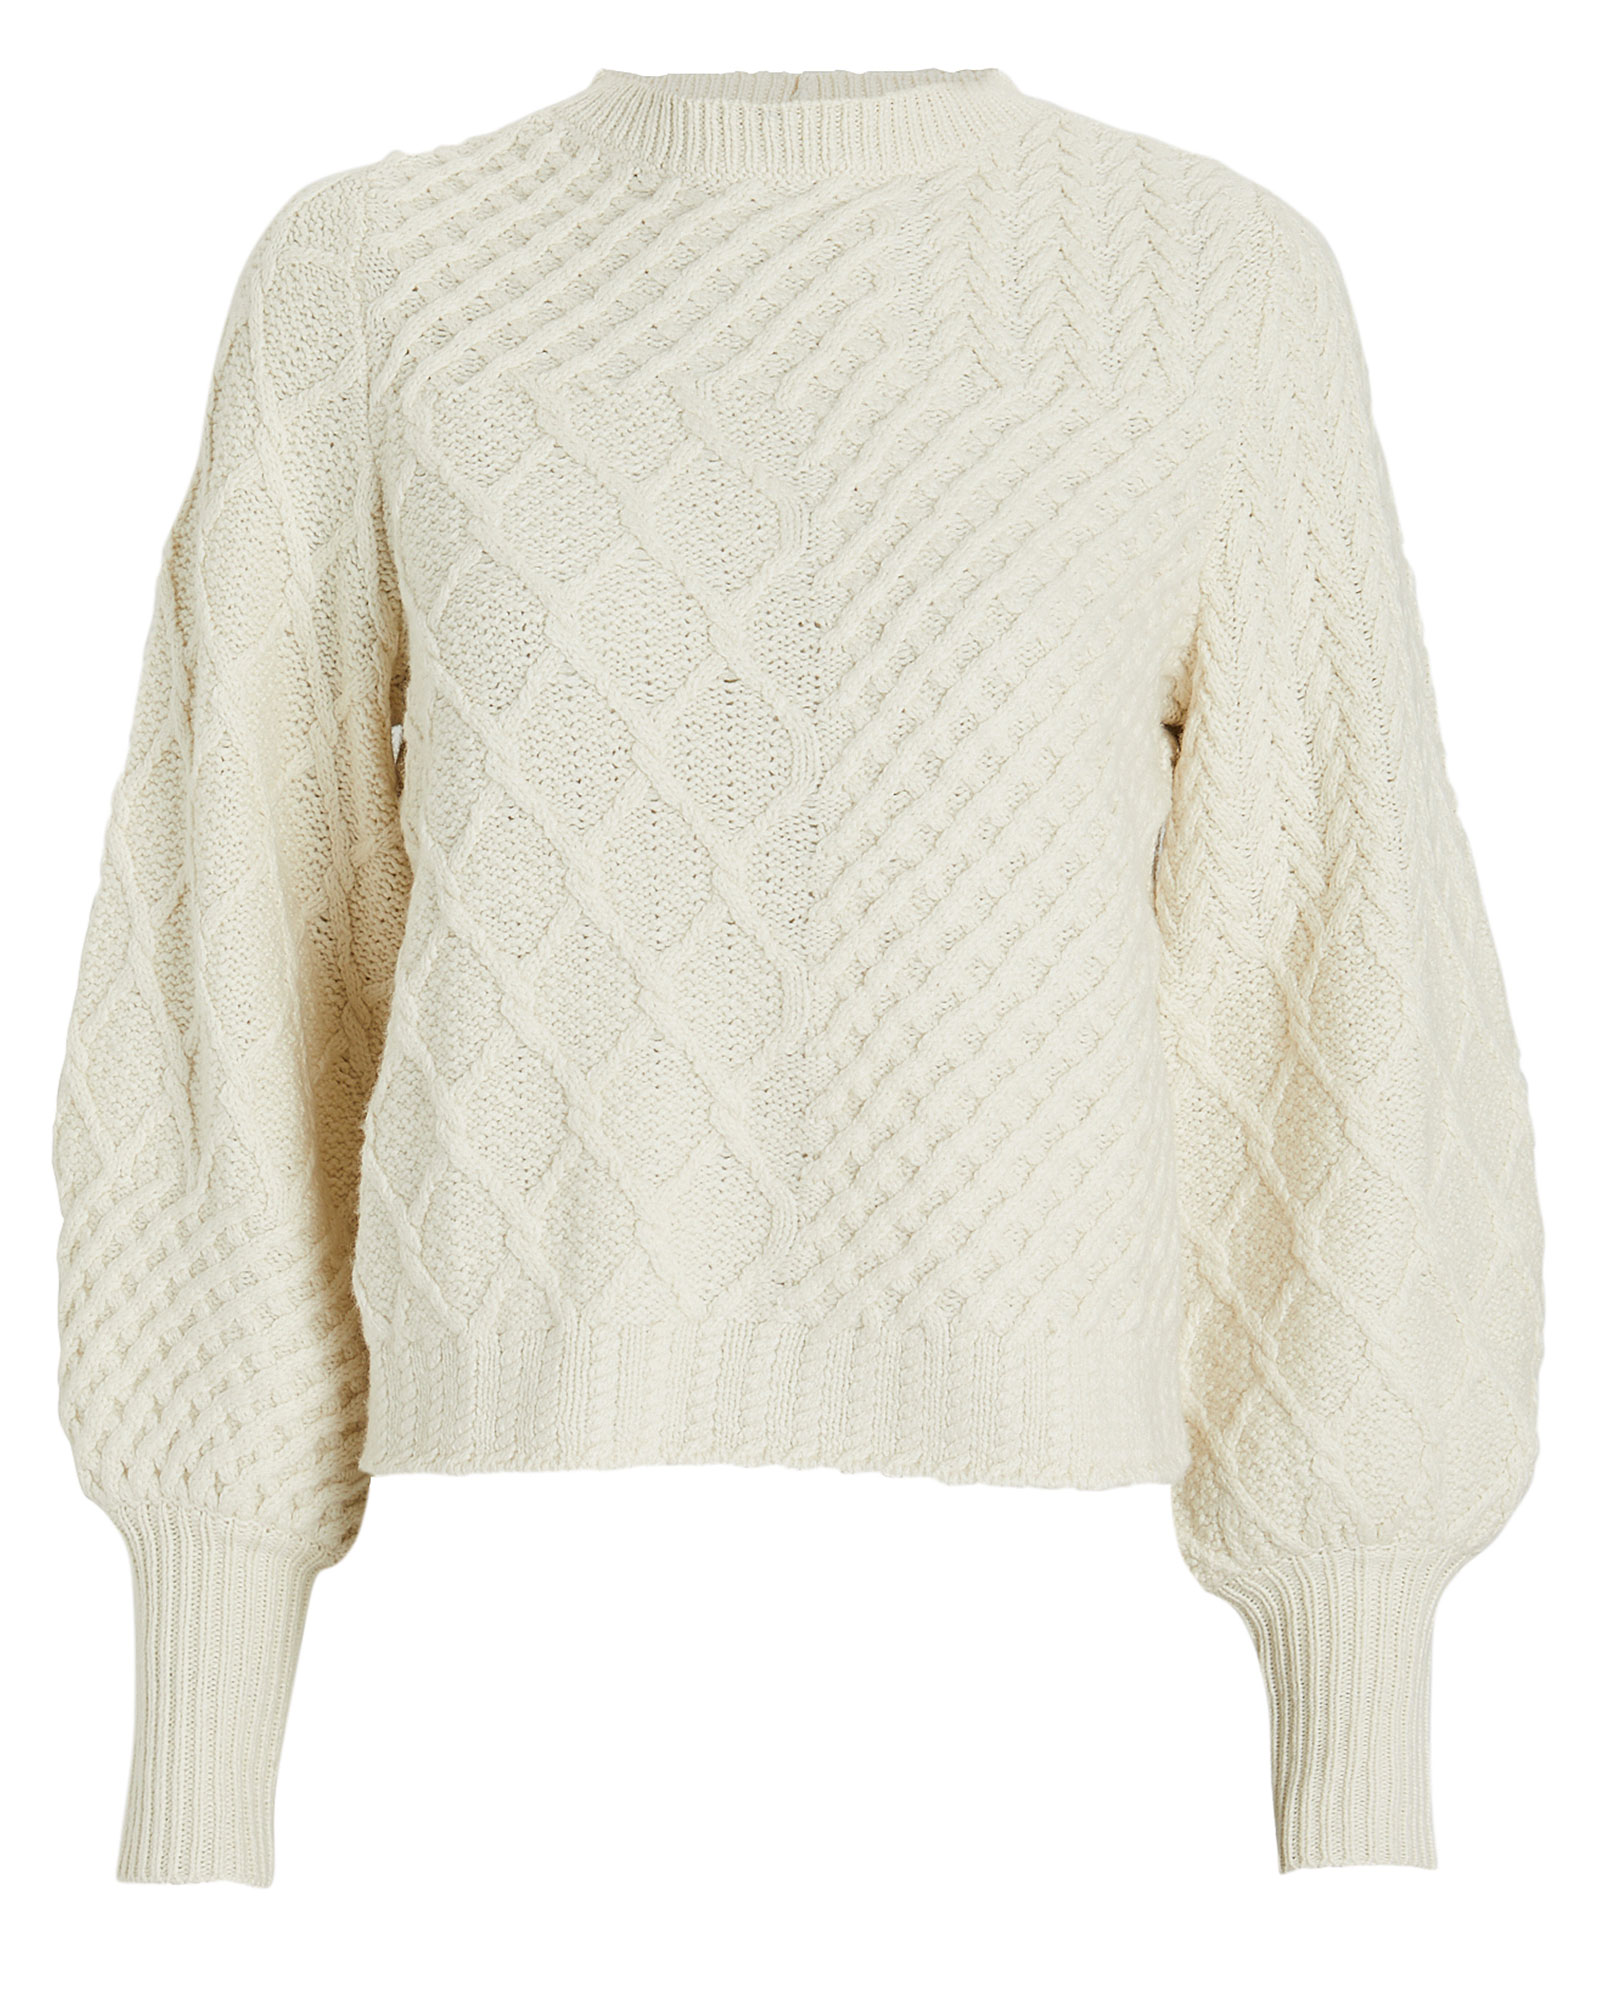 Frame Knits FRAME PATCHWORK CABLE KNIT WOOL SWEATER